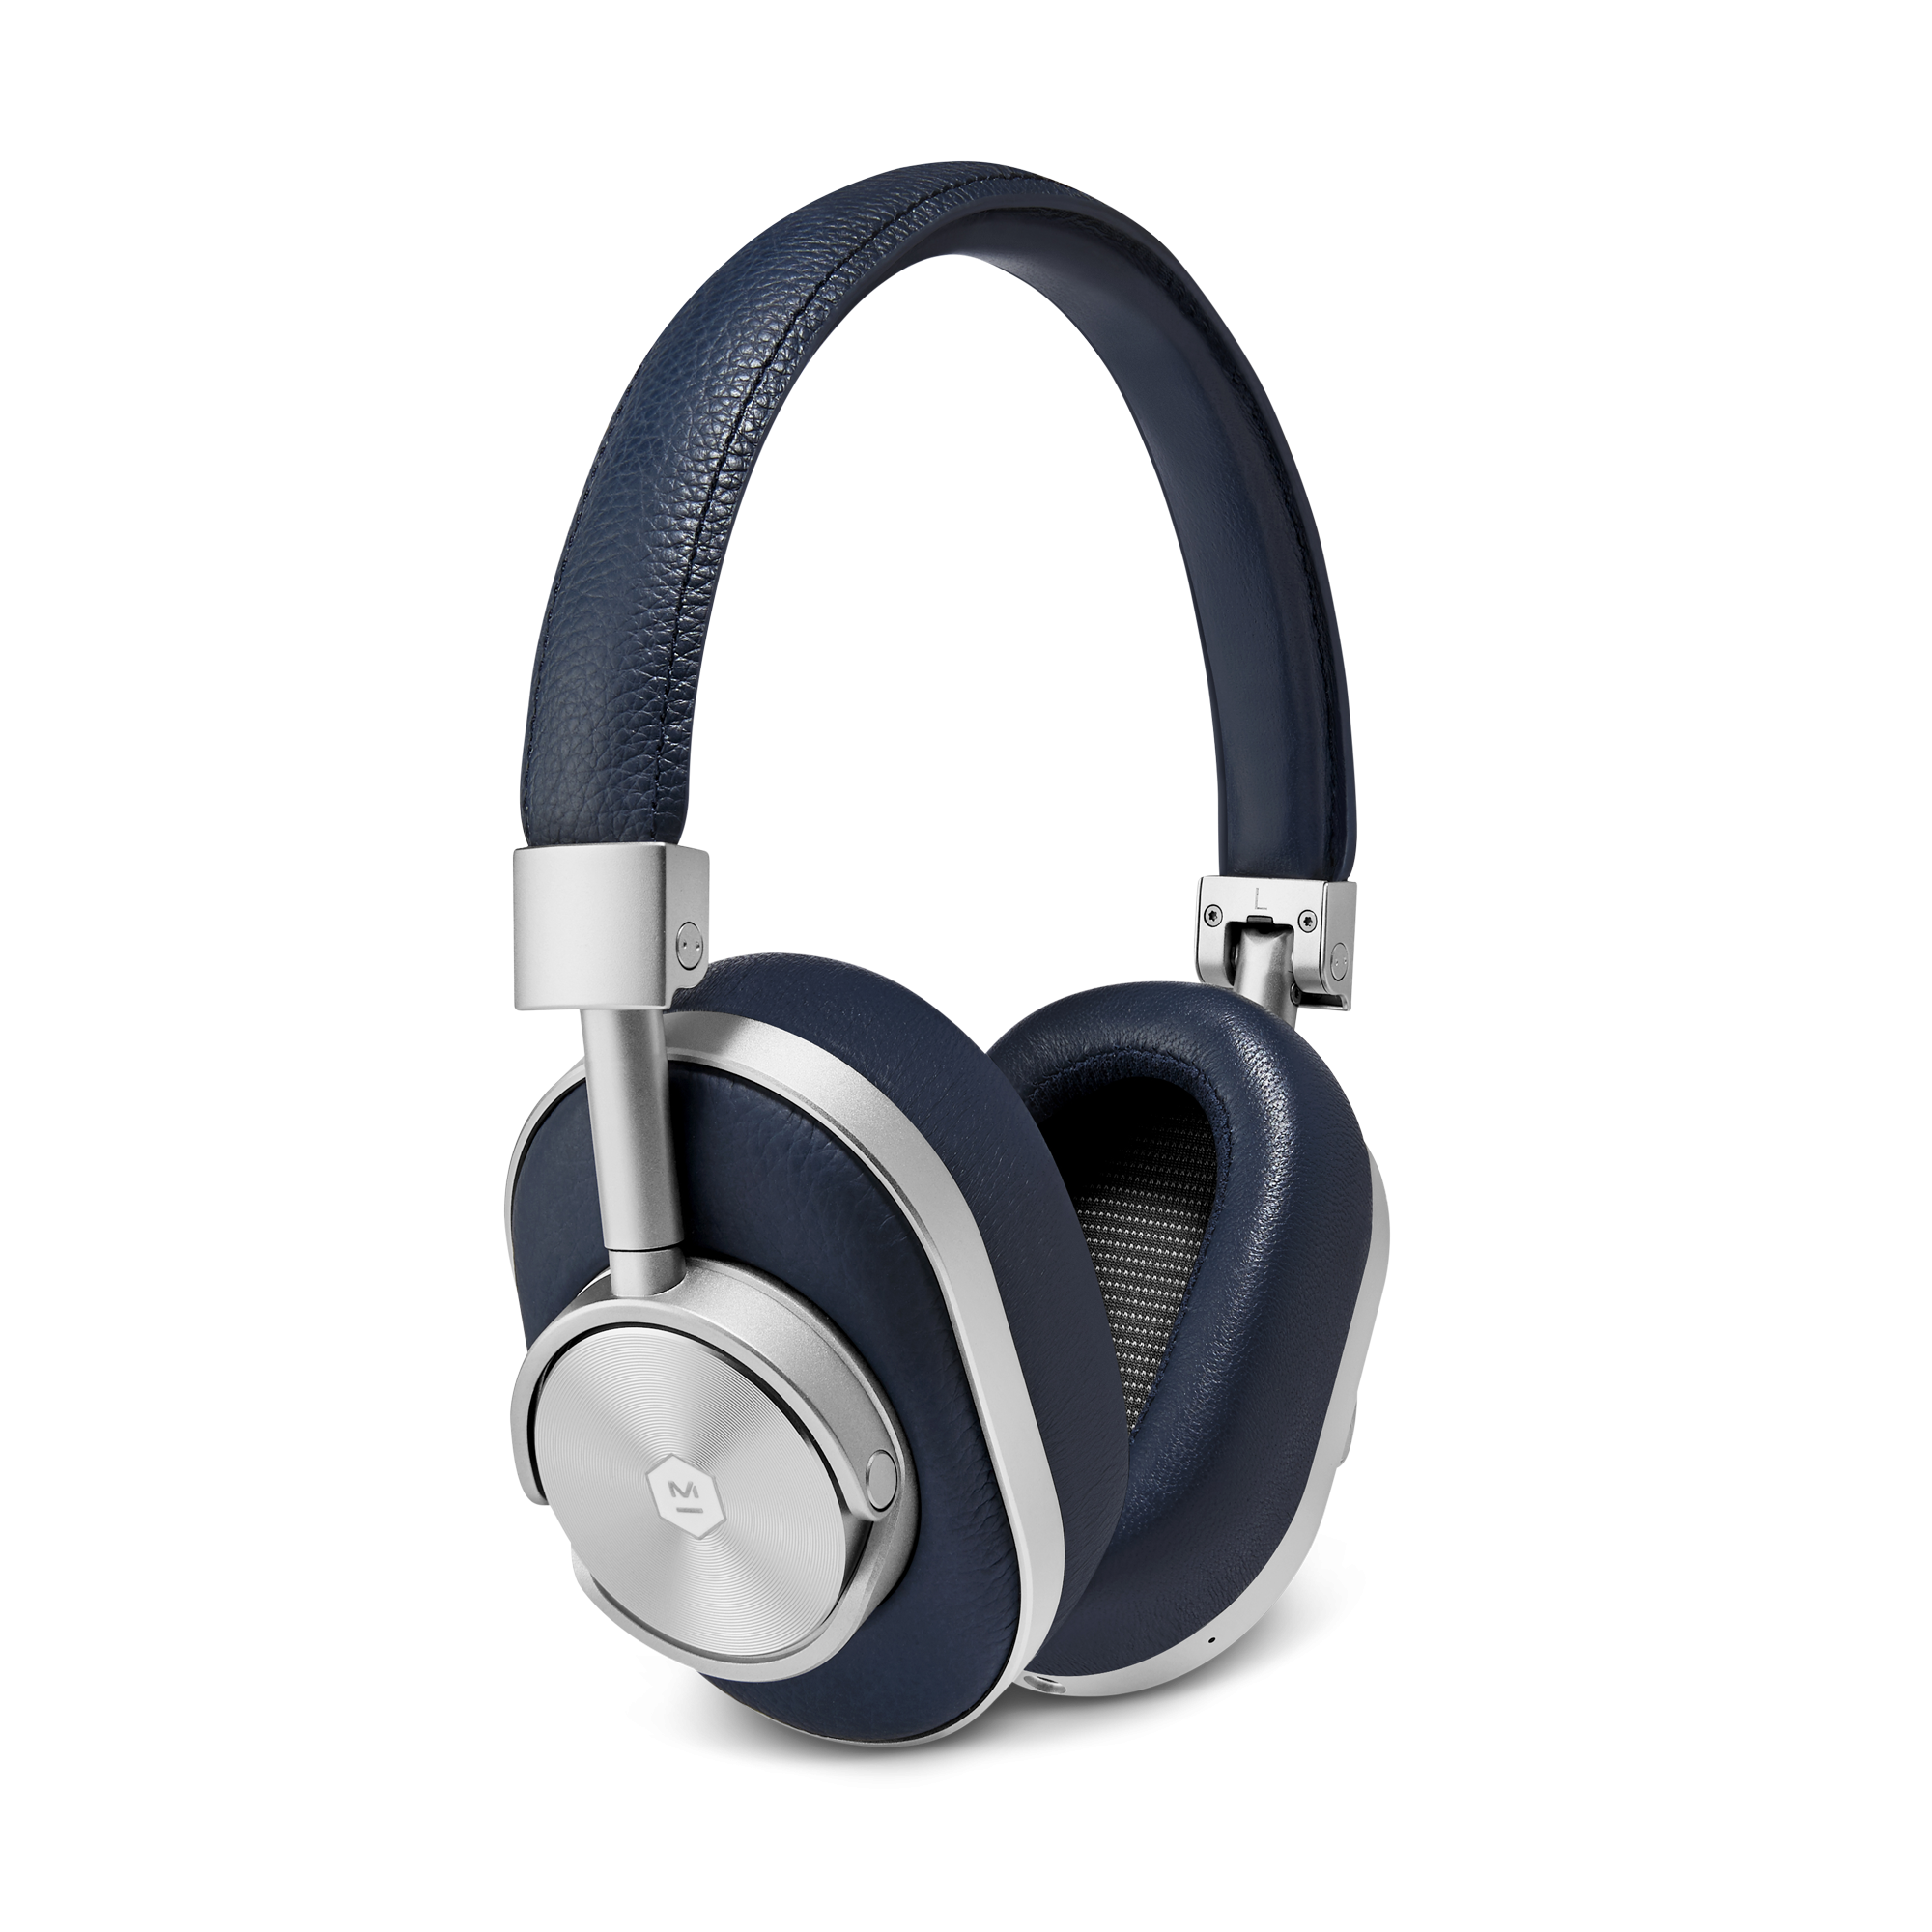 mw60-wireless-over-ear-headphones-silver-navy-1